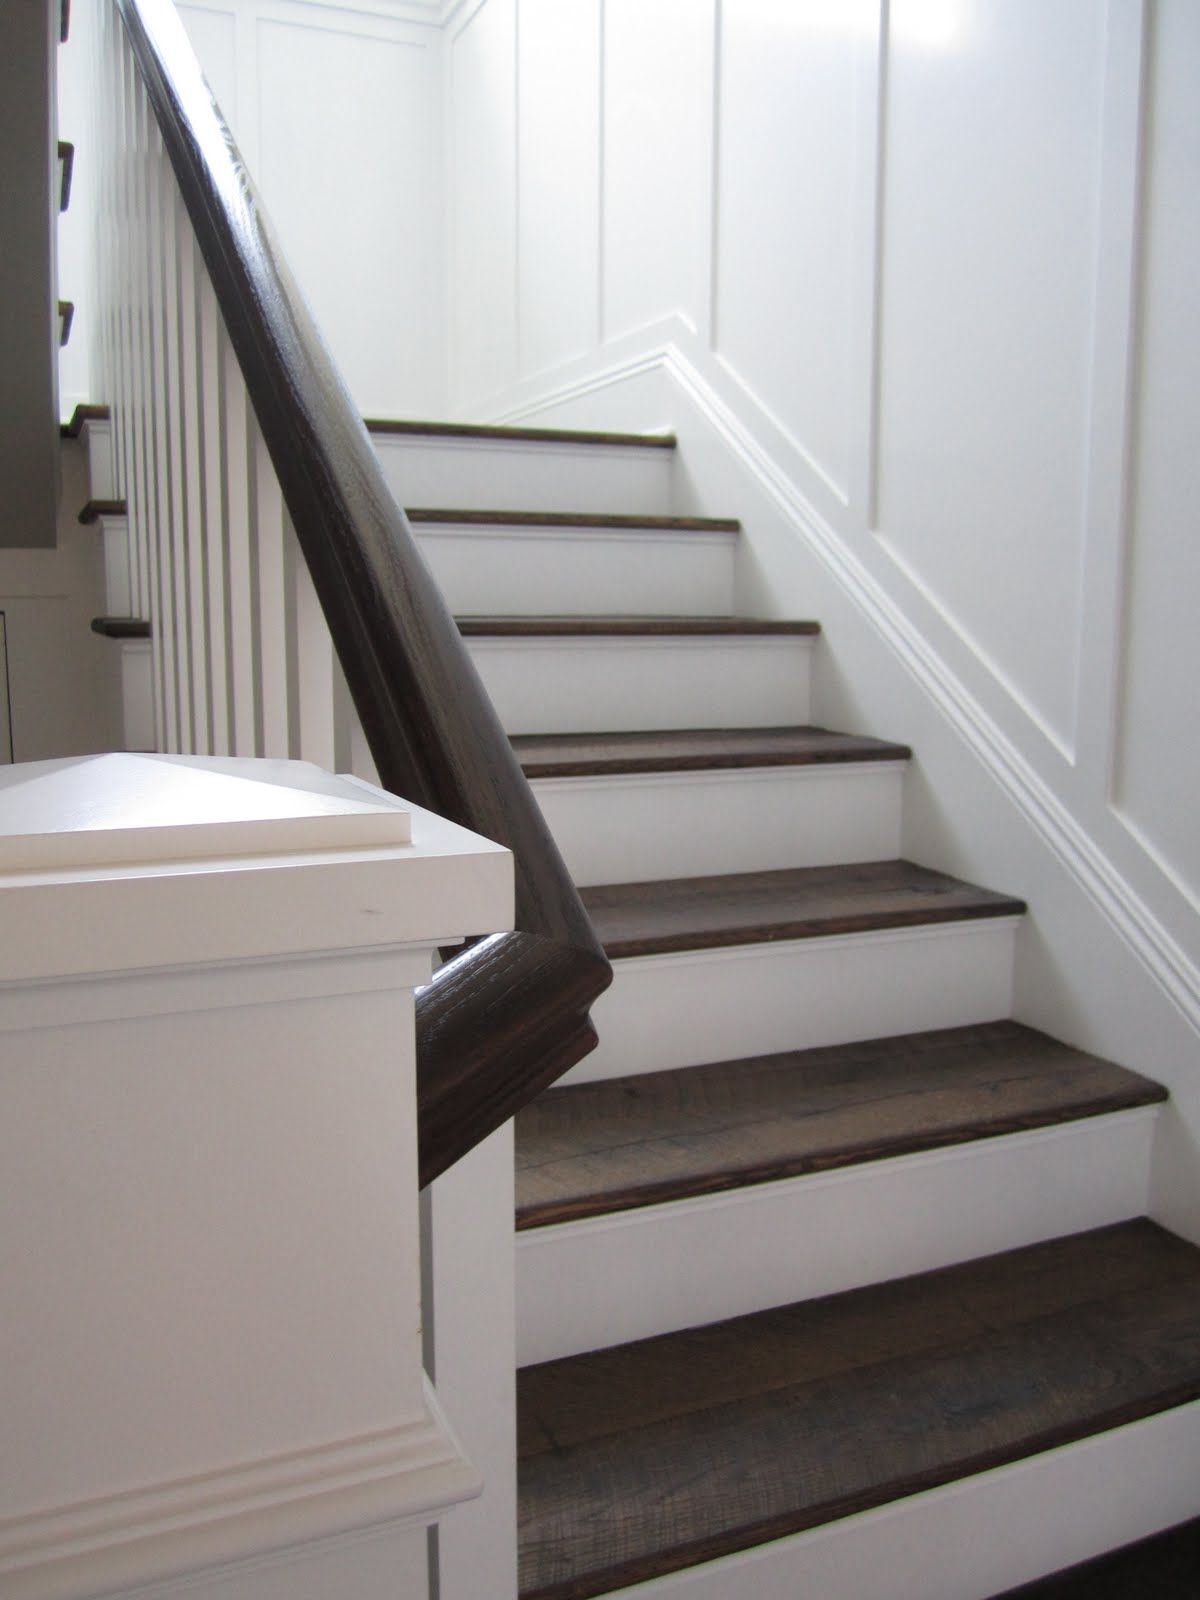 dark basement stairs. Add A Contrasting Runner To Our Stairs + Paint The Bannister Dark. Dark Basement E